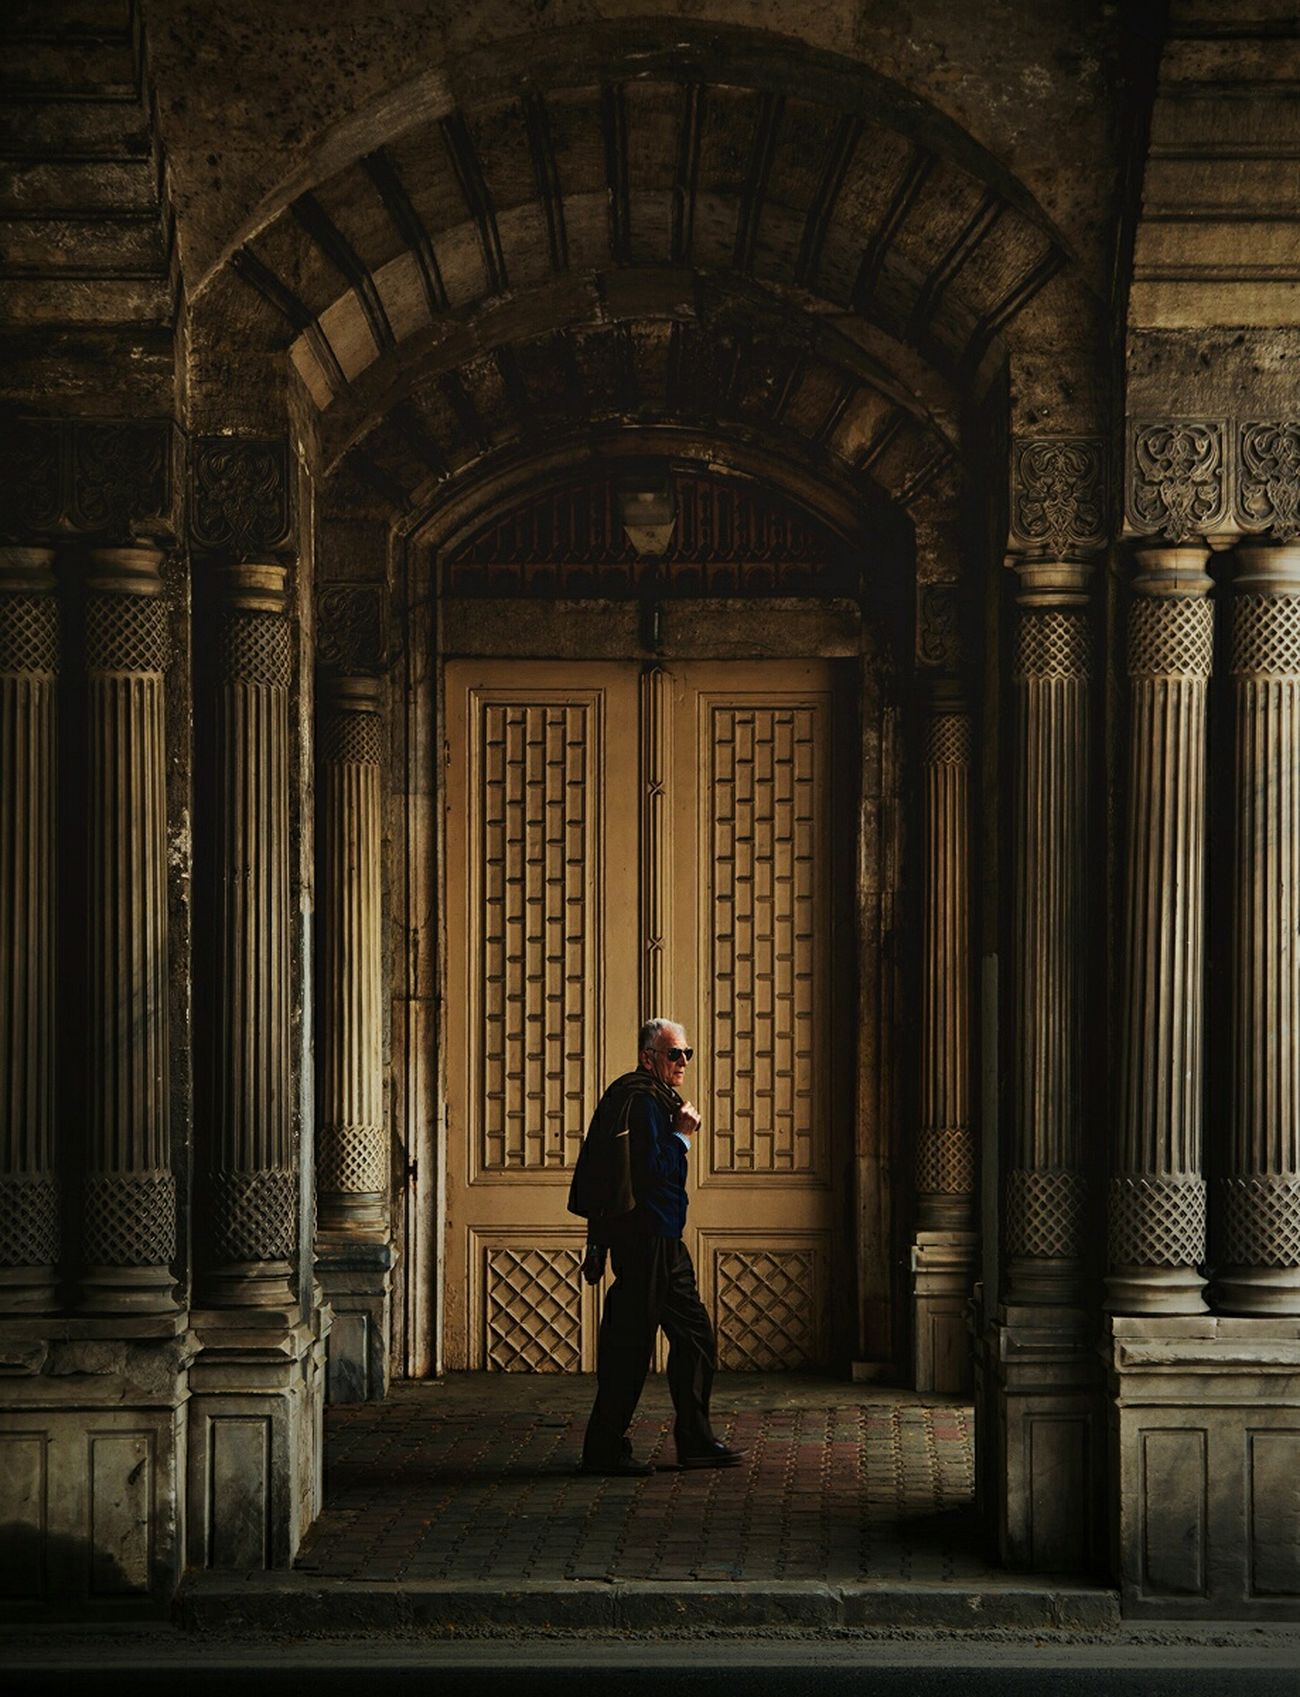 Rear View Architecture One Person Arts Culture And Entertainment People Built Structure Light And Reflection Geometric Shapes Street Life Istanbuldayasam Doorway Streetphotography Outdoors Life Geometric Architecture Building Exterior